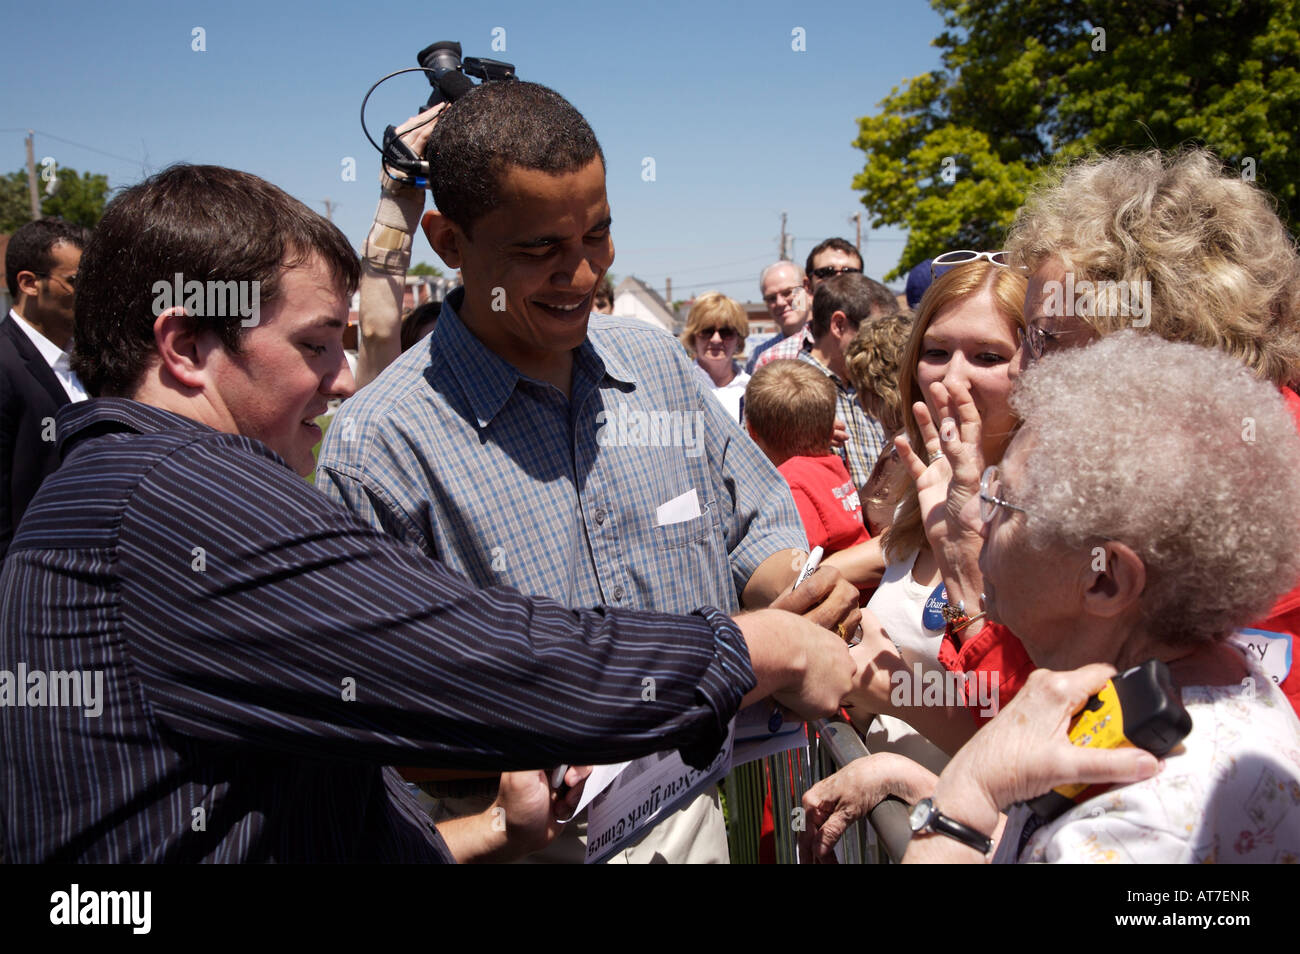 Barack Obama campaigning in Dubuque Iowa on June 9 2007 - Stock Image